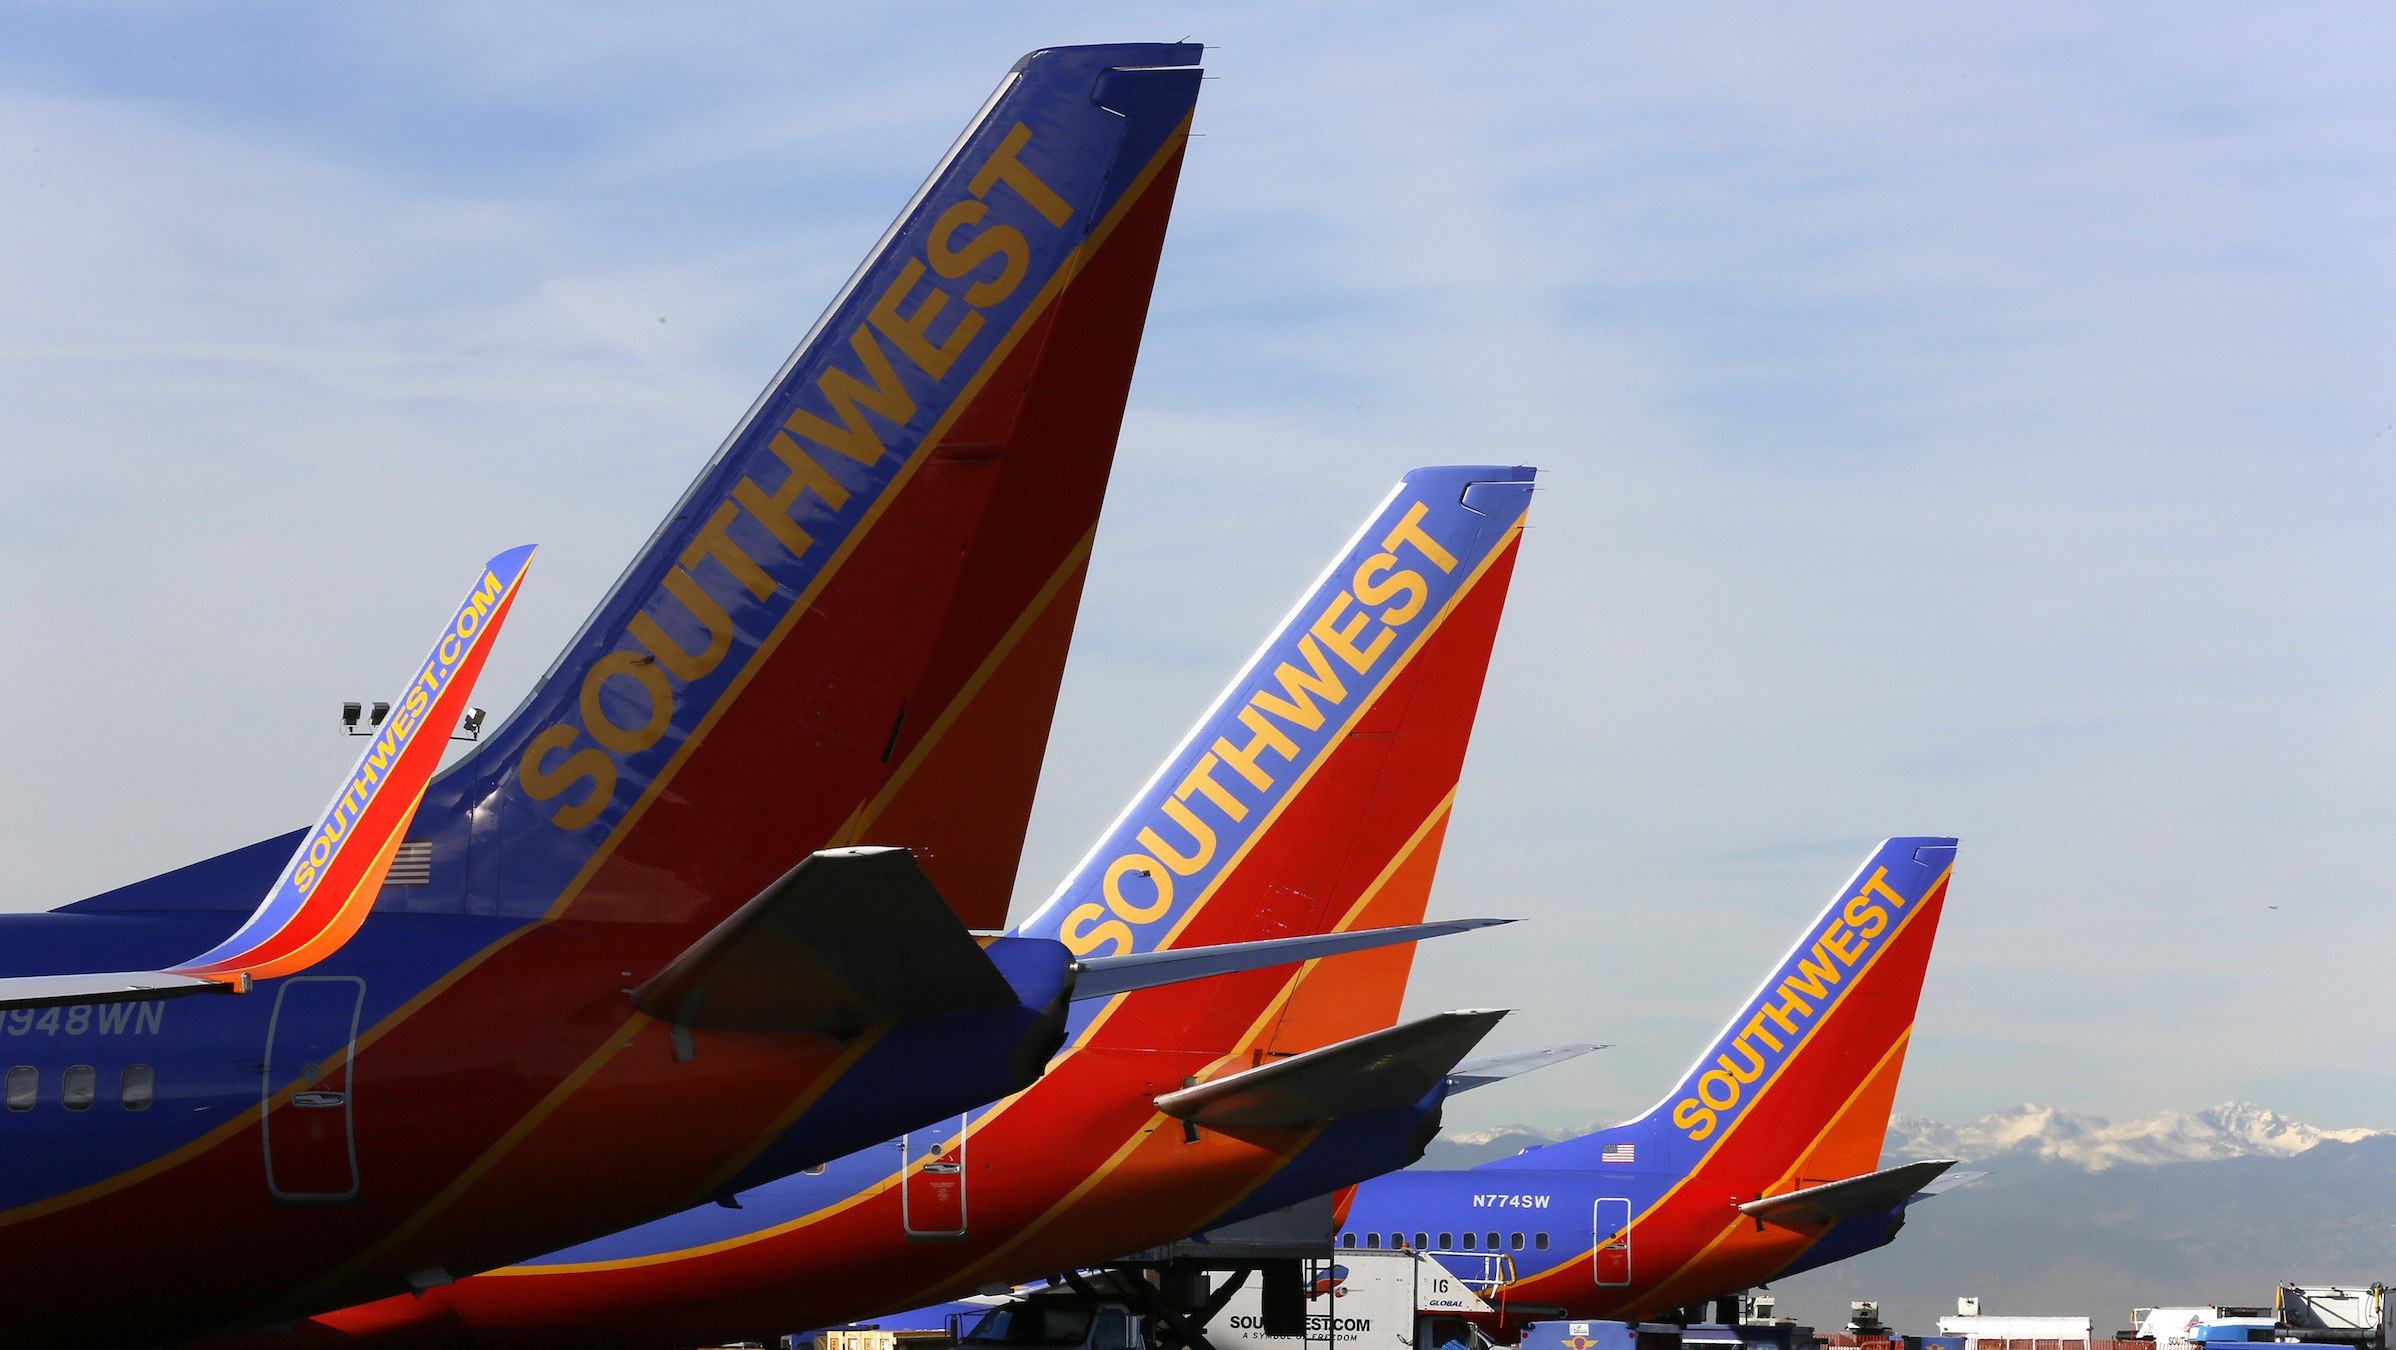 Southwest Airlines jets wait on the tarmac at Denver International Airport in Denver January 22, 2014. Southwest is expected to report higher fourth-quarter results when they announce the results January 23, 2014. The discount airline raised luggage fees at its AirTran unit and launched new fees tied to certain boarding positions at the gate to raise revenue.   REUTERS/Rick Wilking (UNITED STATES - Tags: BUSINESS TRANSPORT) - RTX17QCO